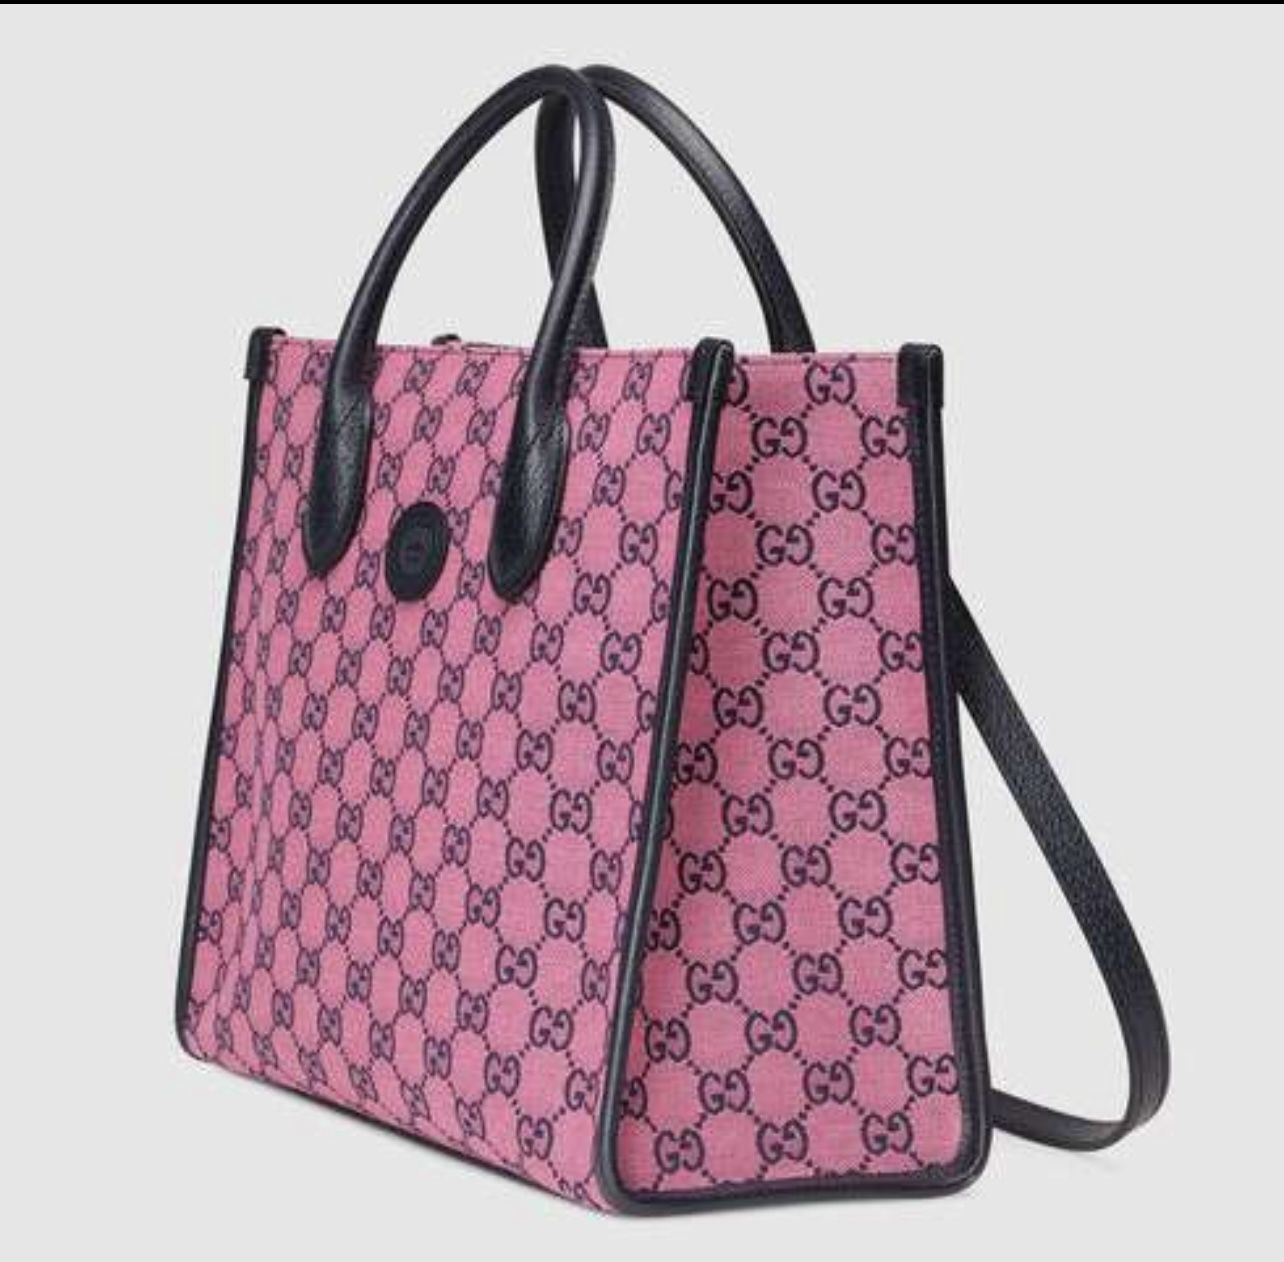 G UCCI Pink Tote